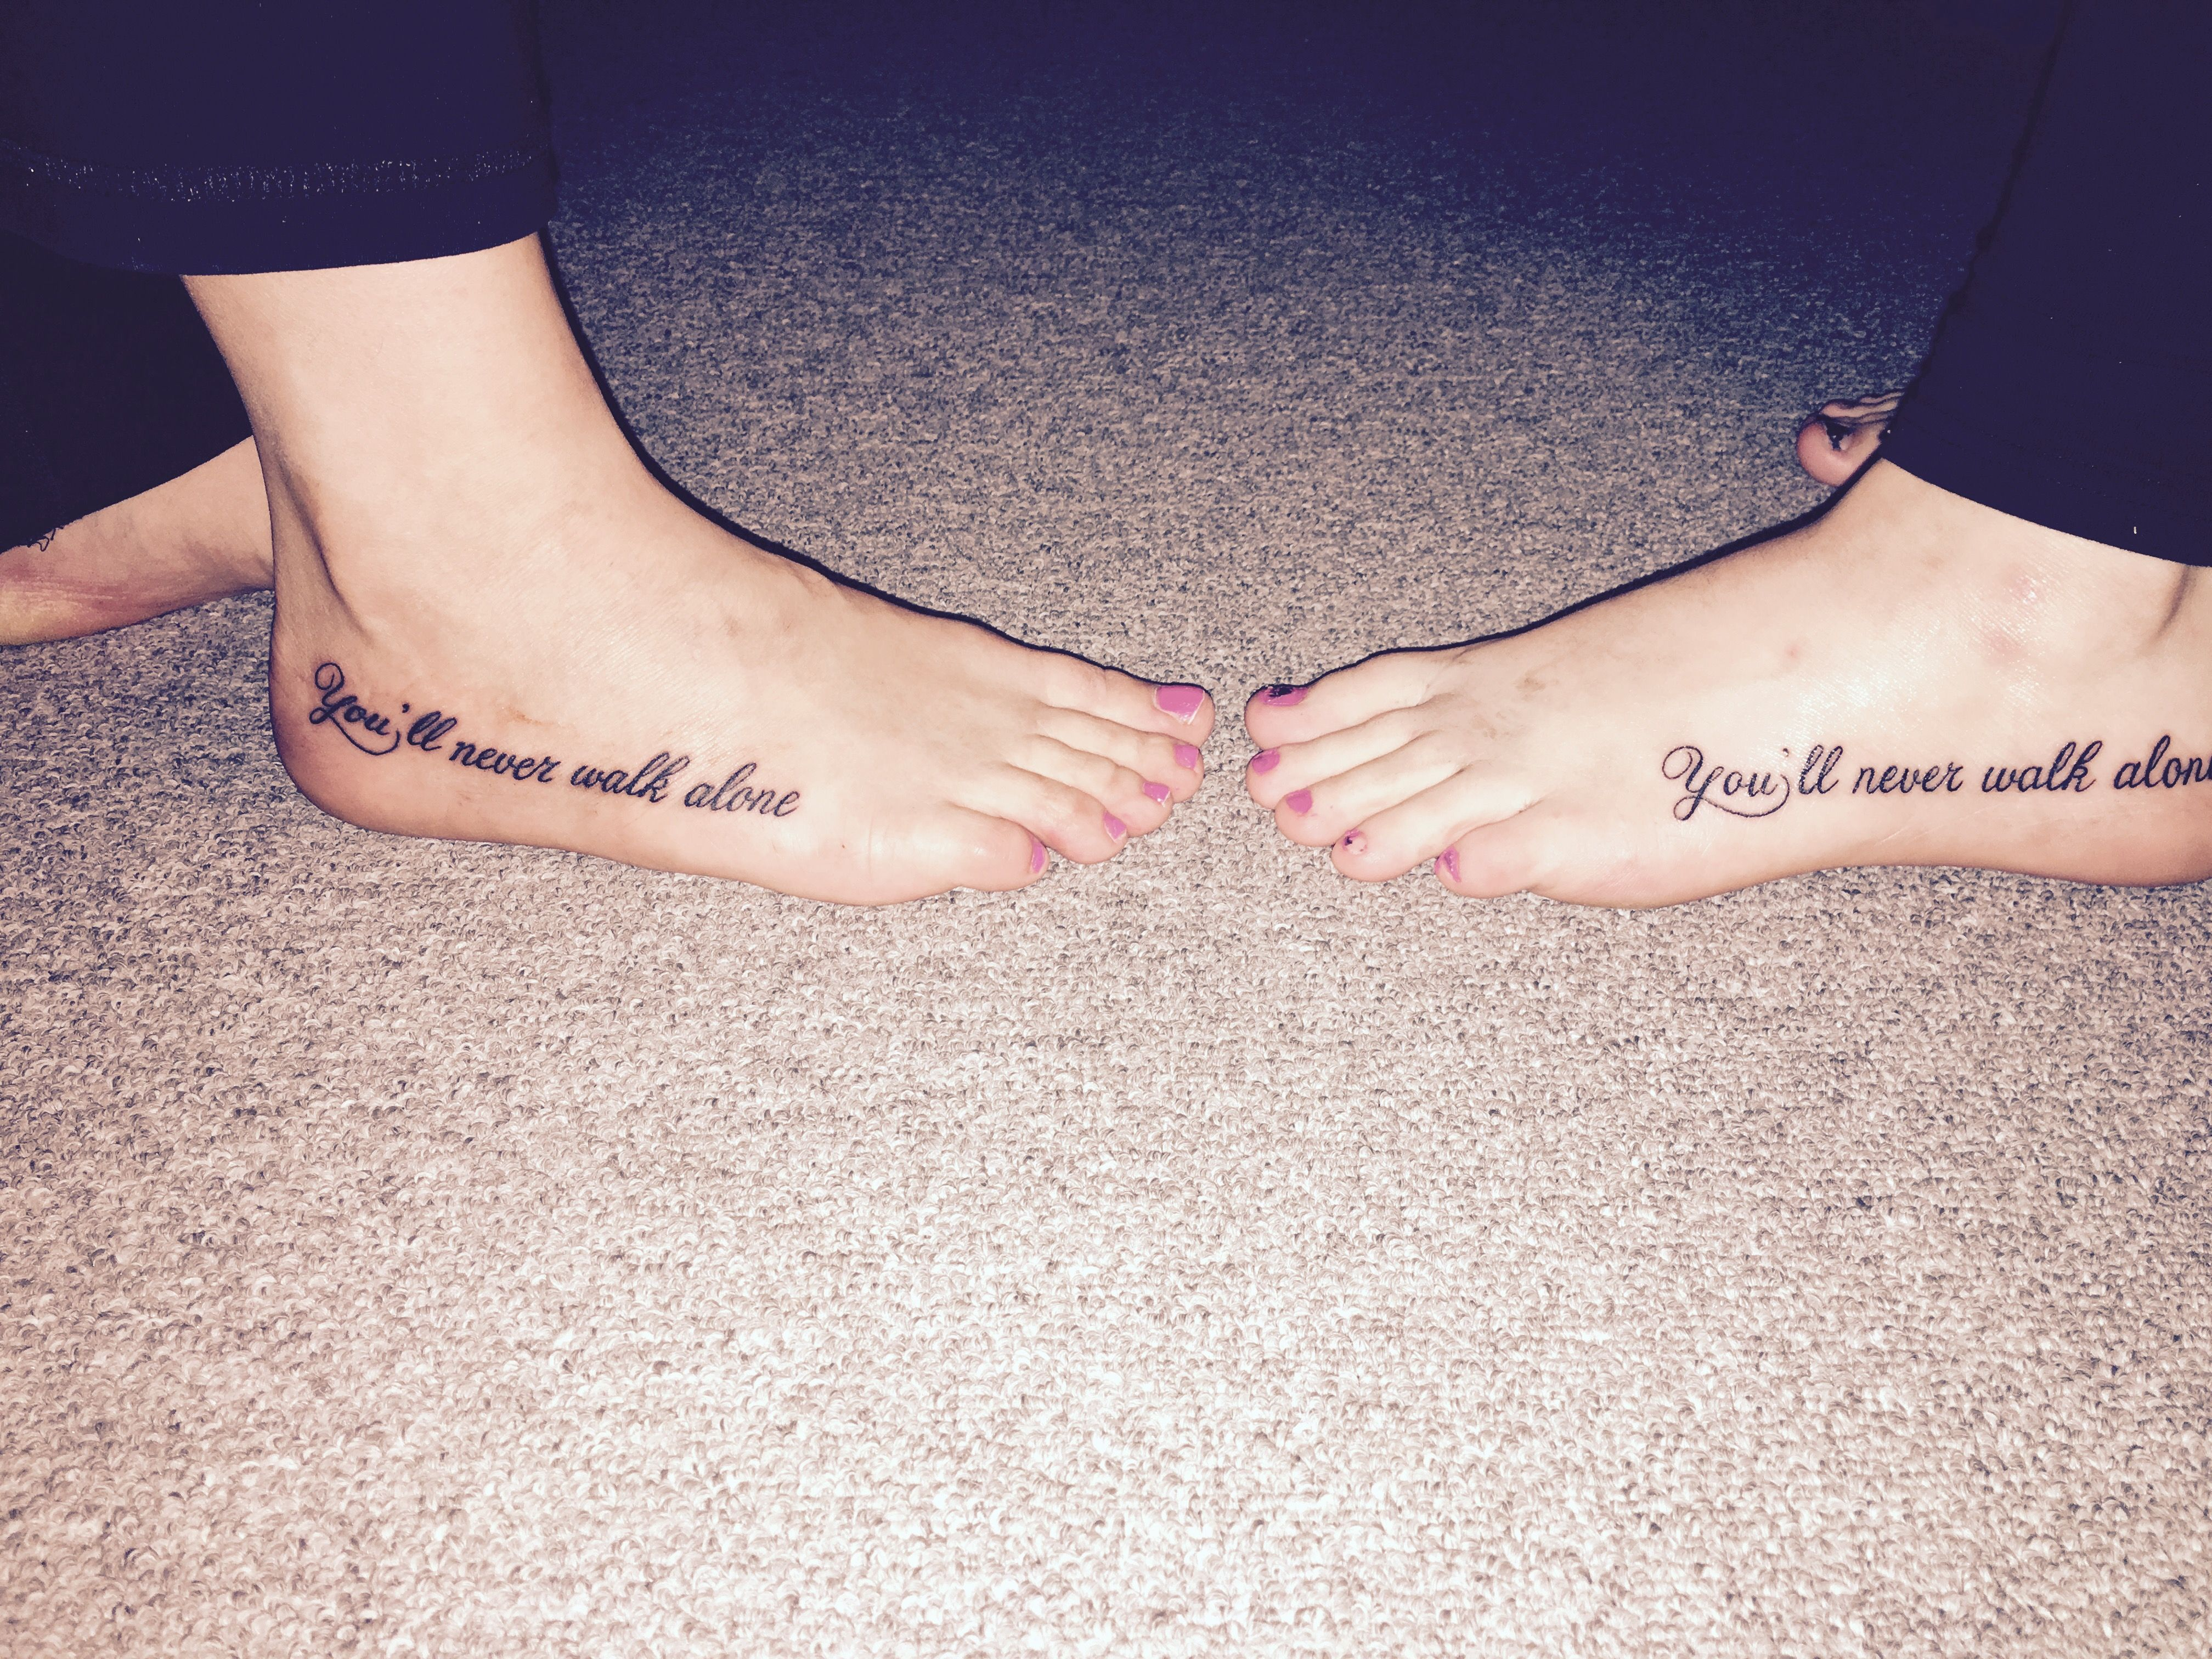 """You'll never walk alone"" frienshiptattoo Alone tattoo"